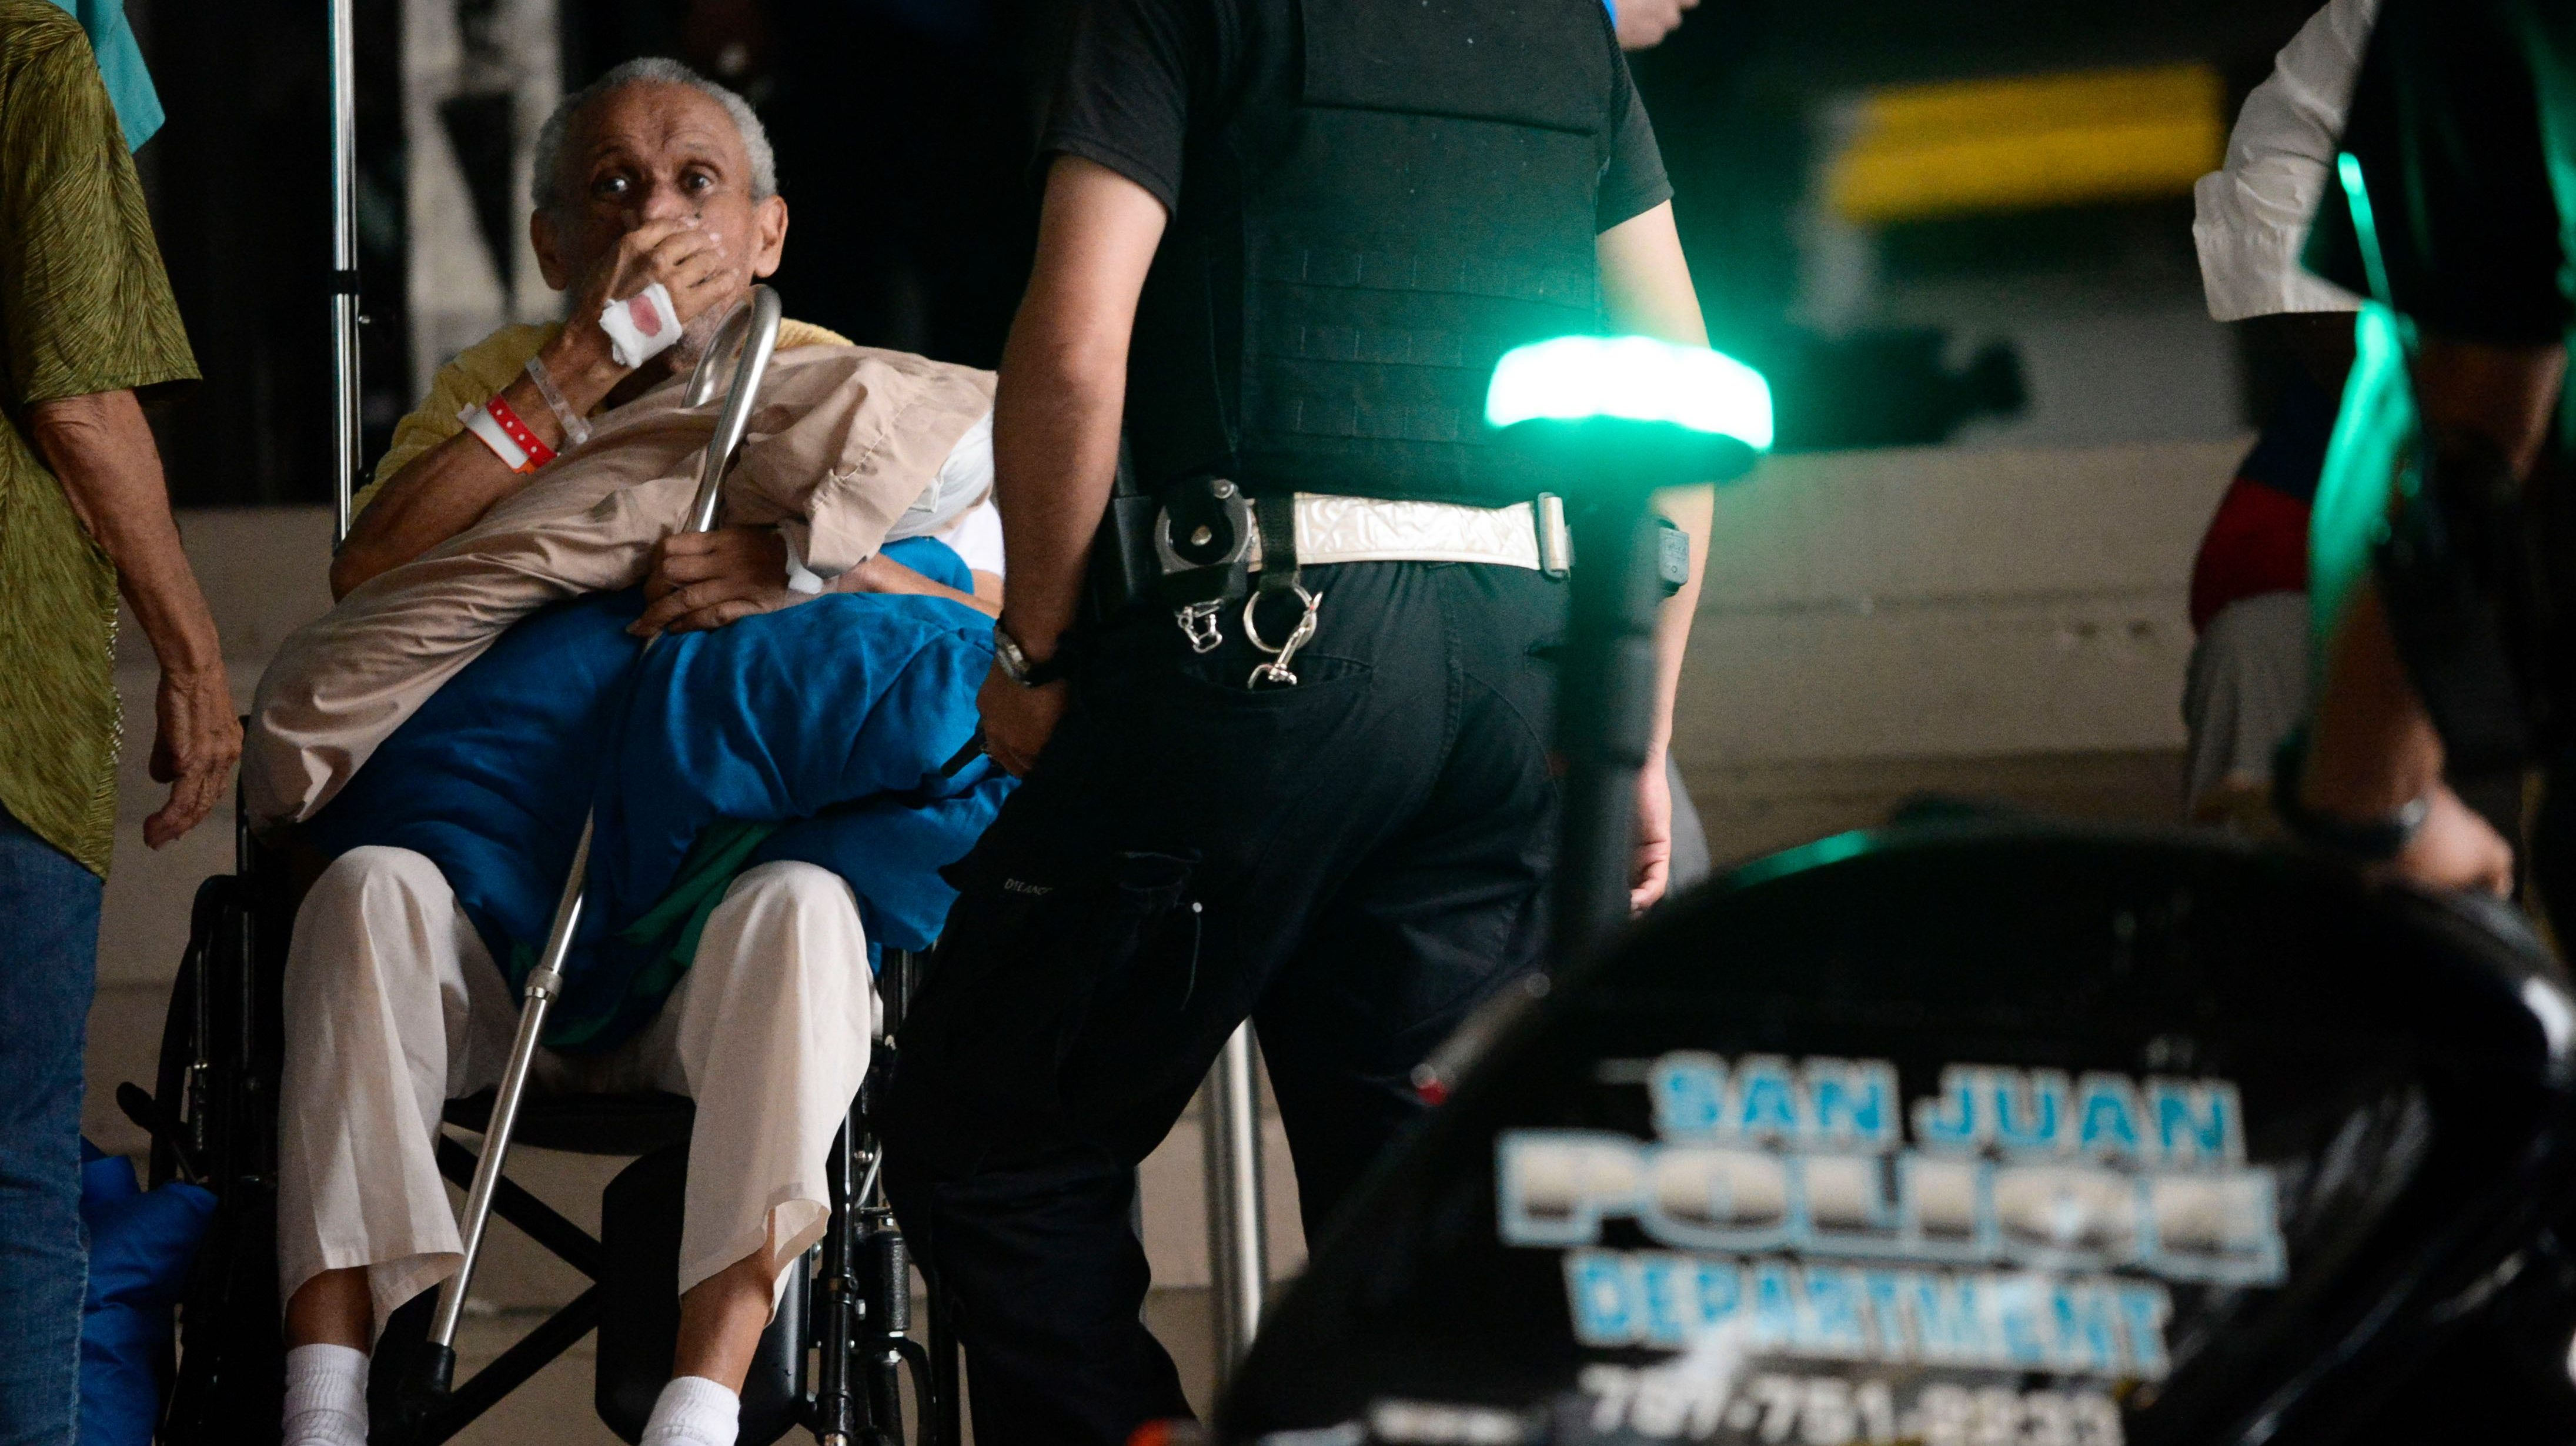 A patient waits to be evacuated from the San Francisco hospital after an electrical plant failure due to hurricane maria